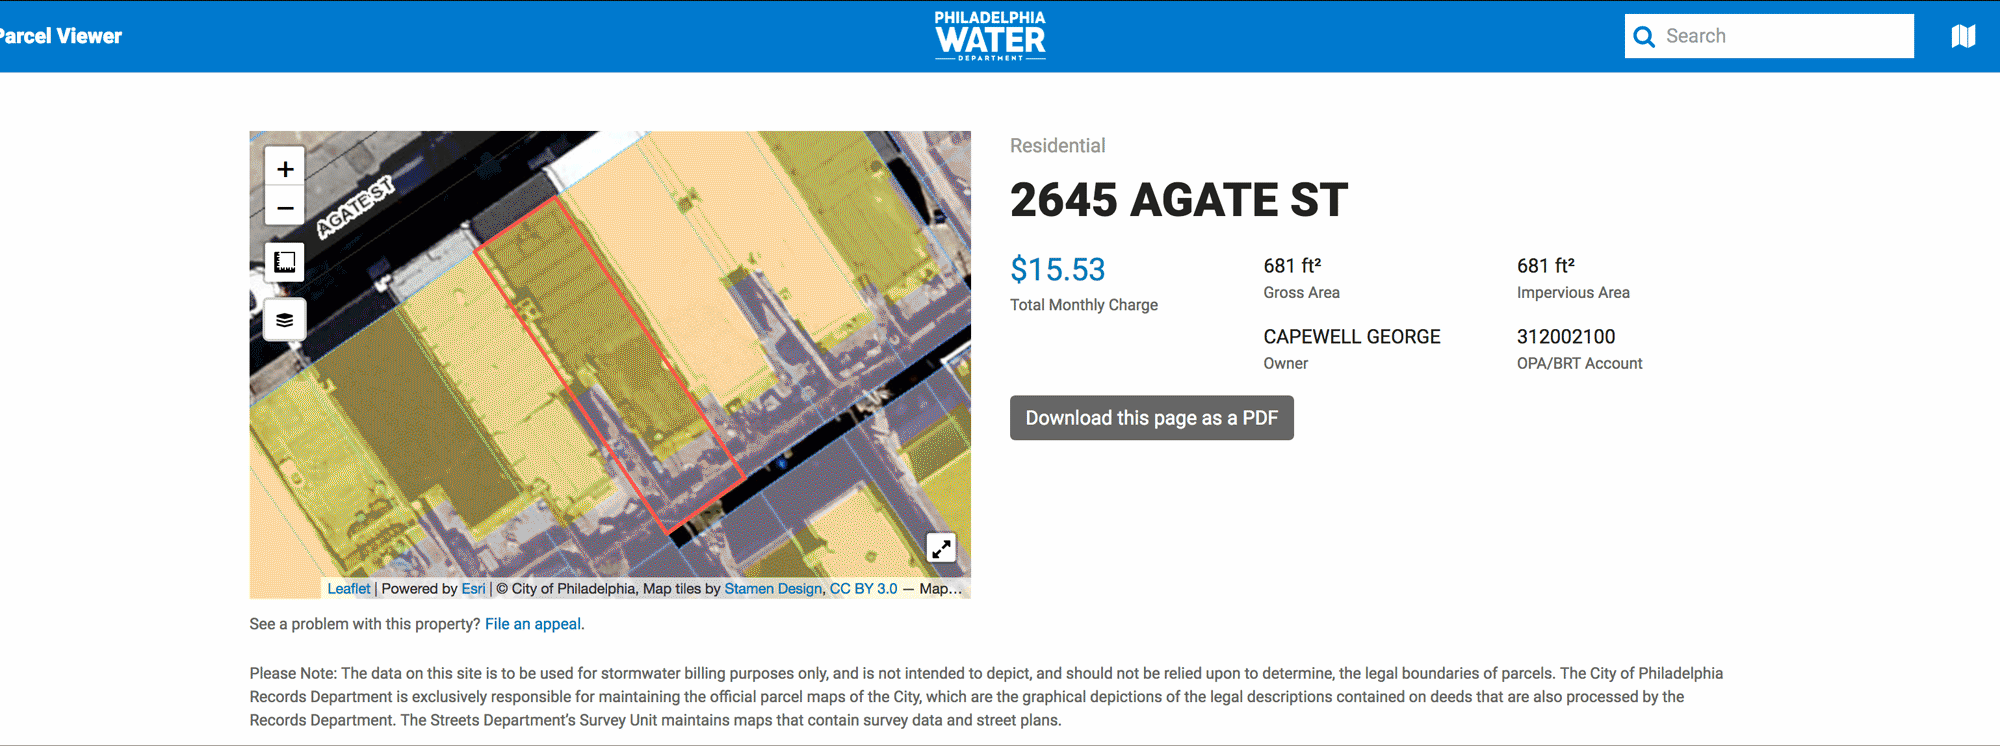 Screenshot illustrating the process to research property and related water bill information on the Philadelphia Water Department's website.